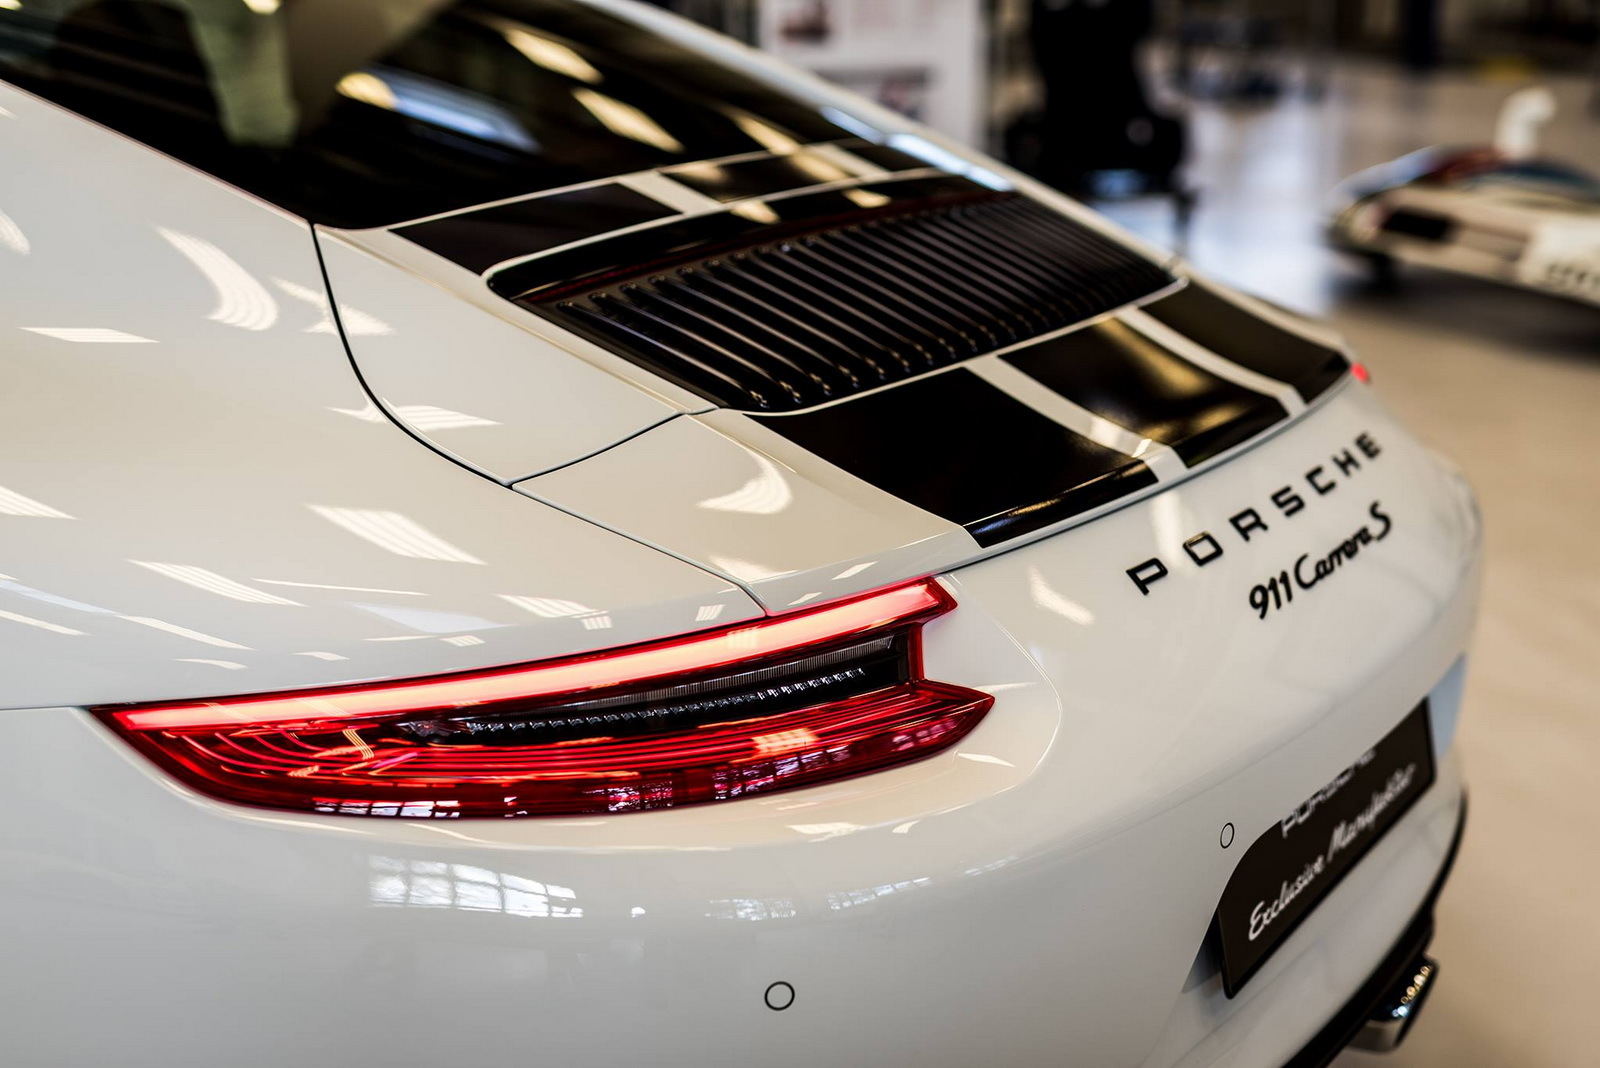 Foto de Porsche 911 Carrera S Endurance Racing Edition (6/10)